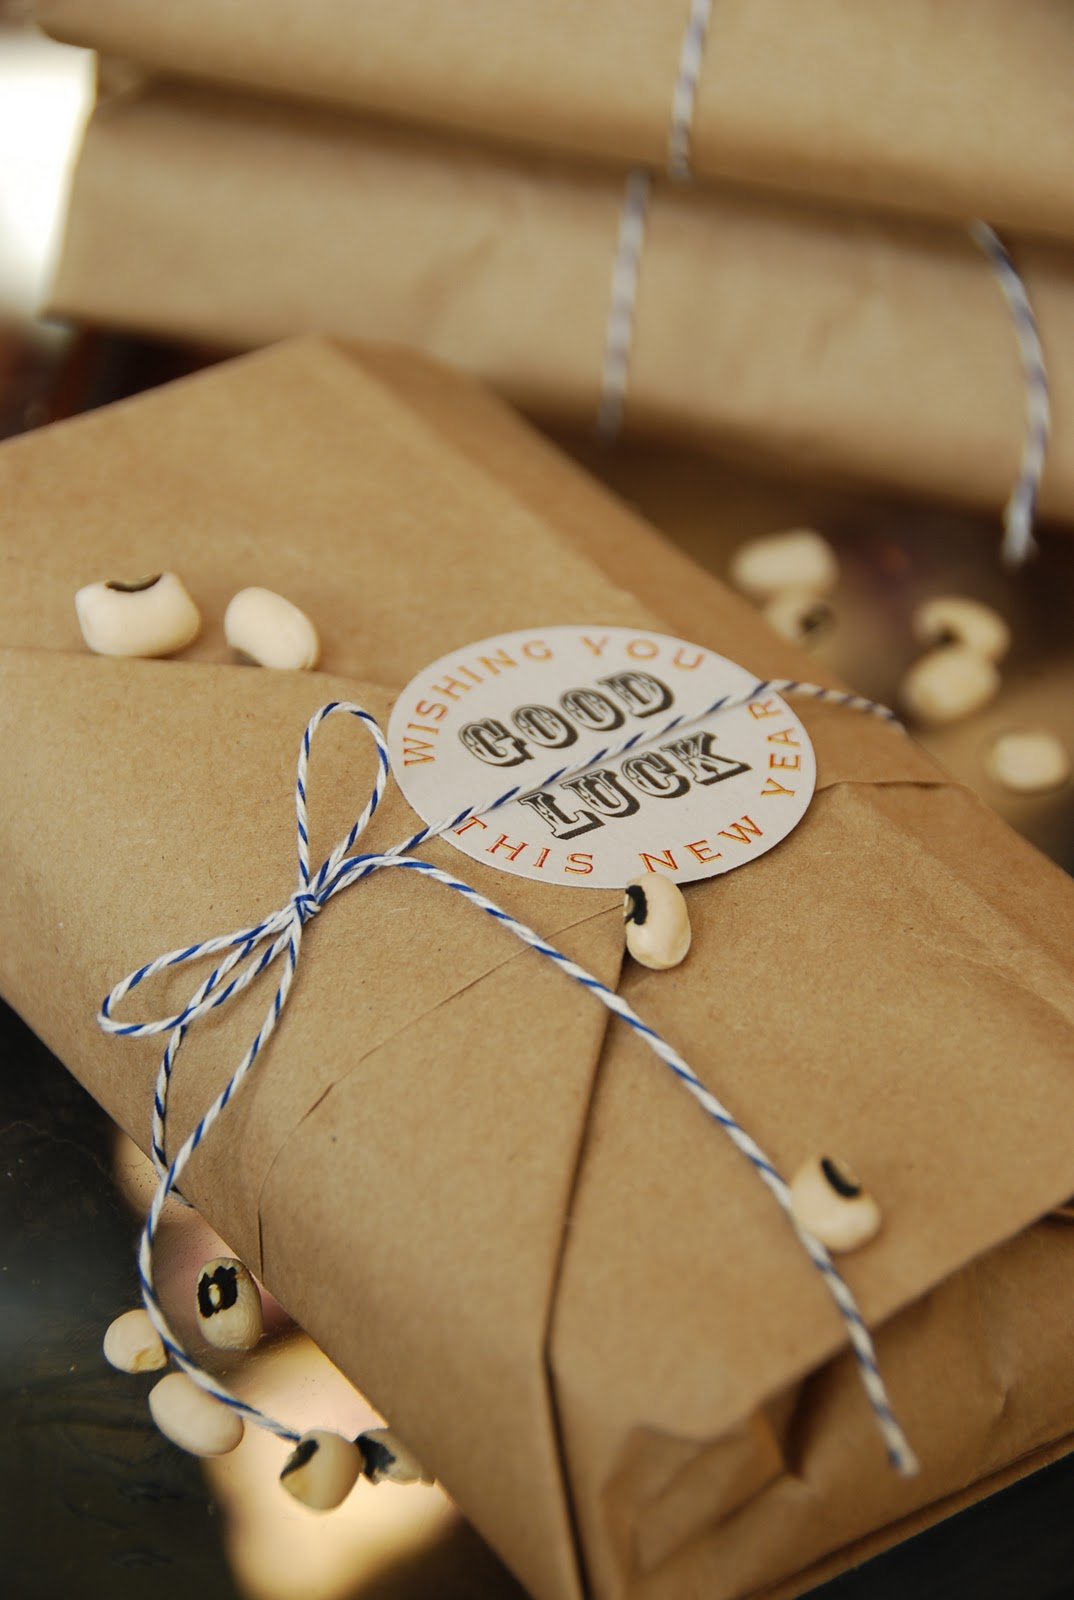 Blue Eyed Yonder Gift Idea for the New Year | Vintage ...